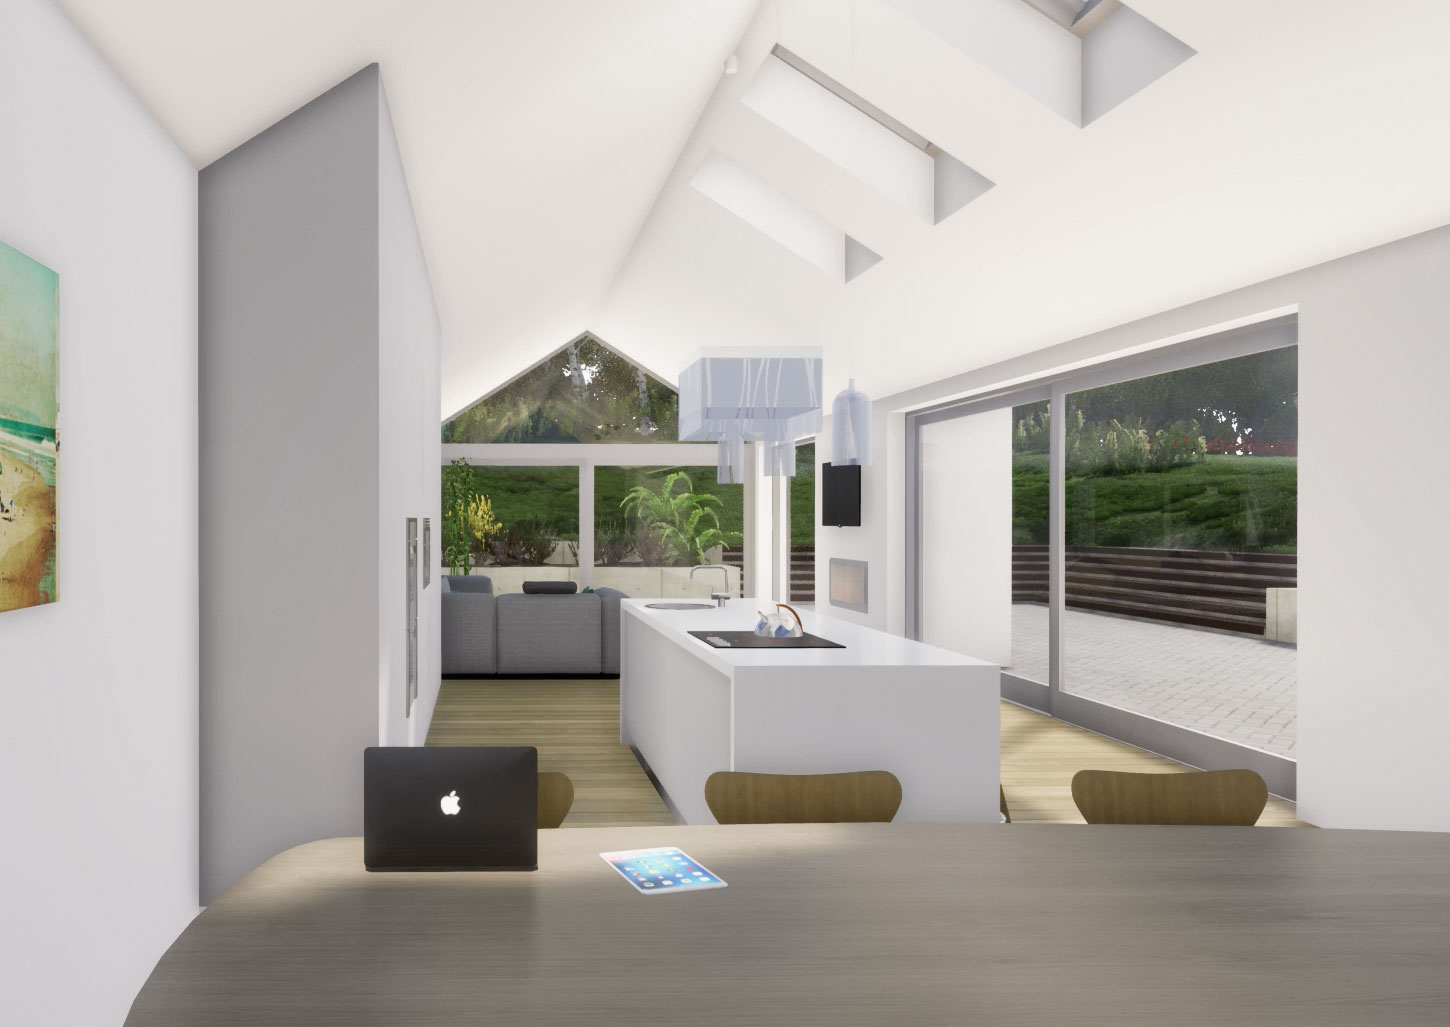 A contemporary extension and renovation of a 19th century worker's cottage in Newtownmountkennedy